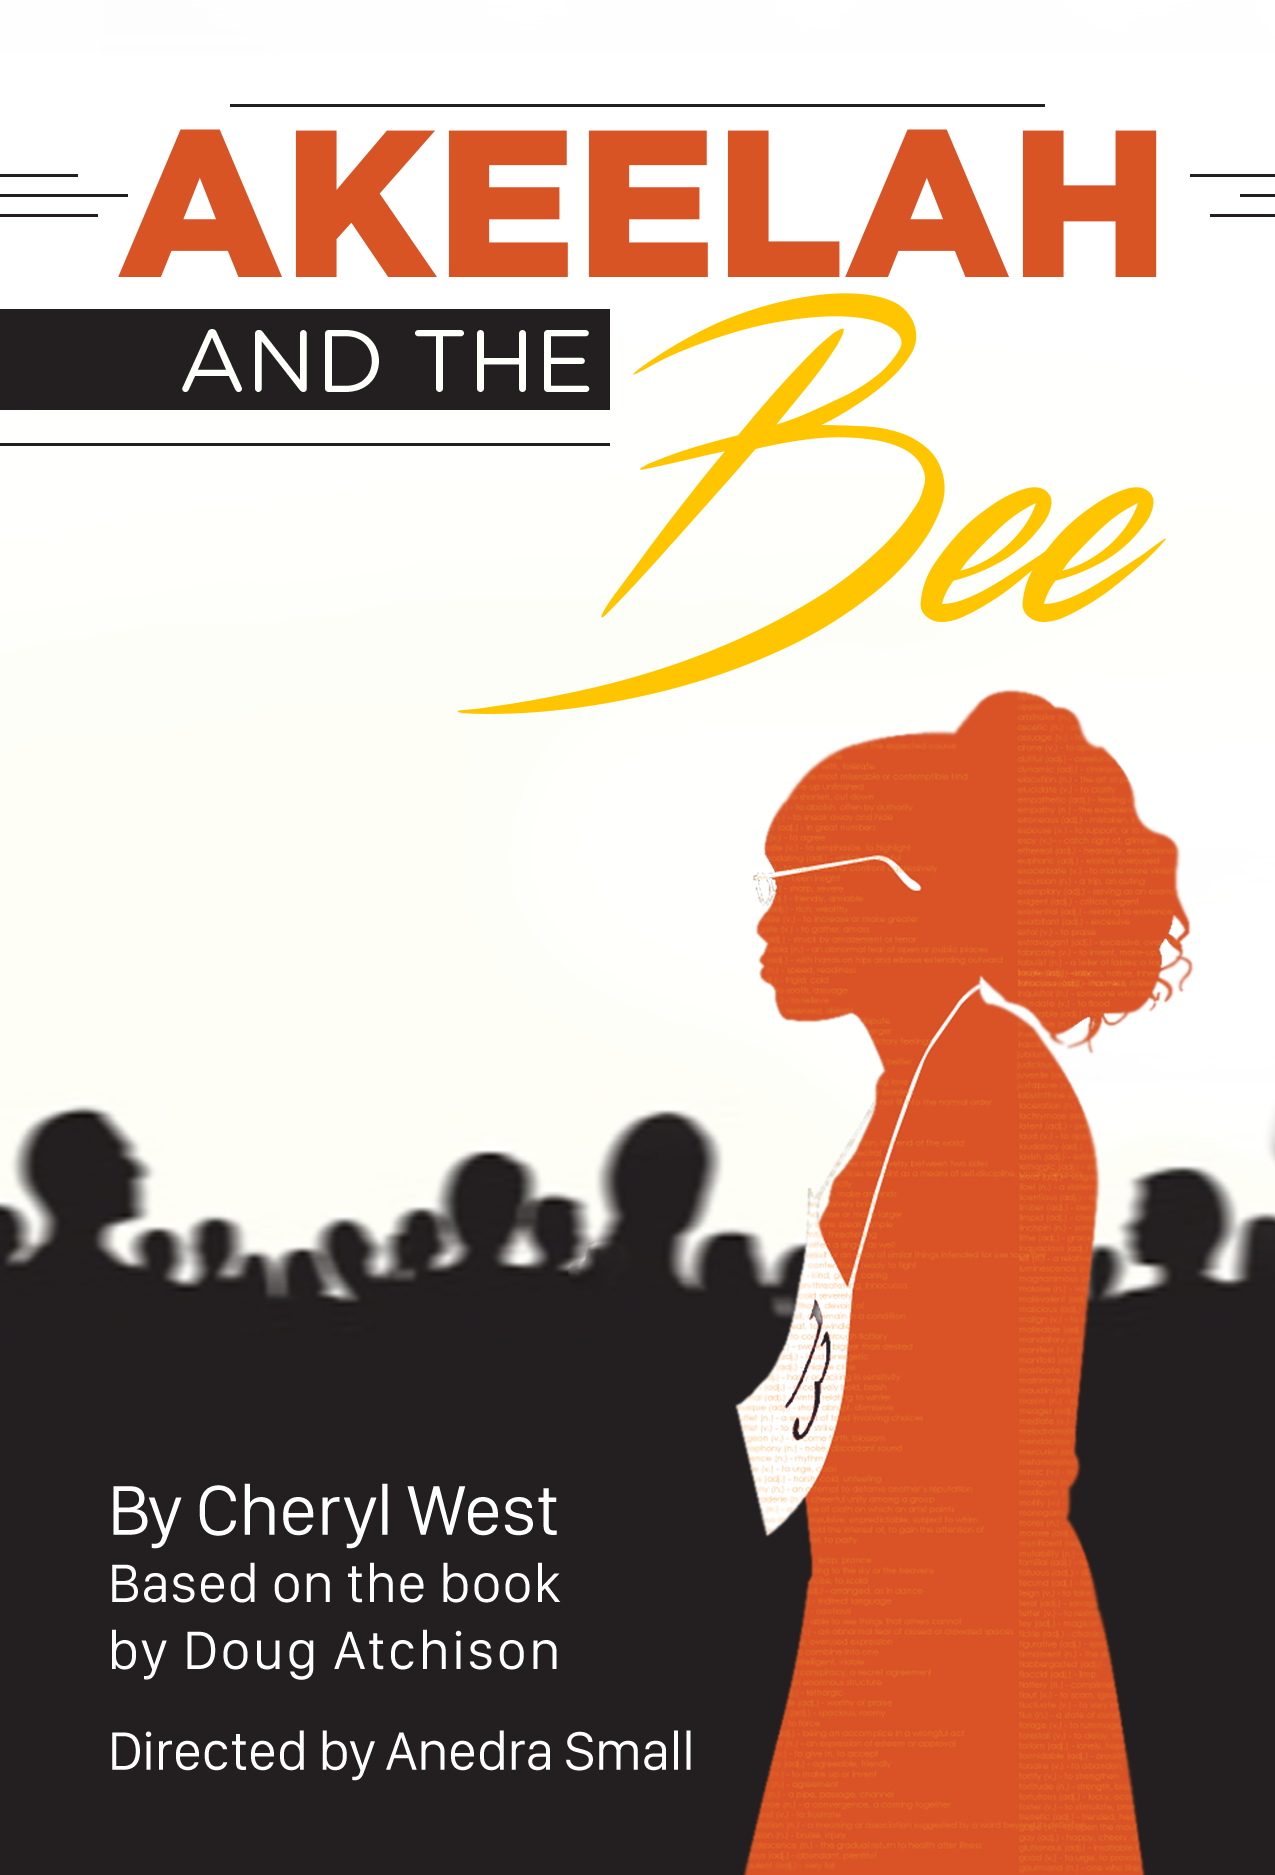 essay about akeelah and the bee We will write a custom essay sample on akeelah and the bee specifically for you for only $1638 $139/page.